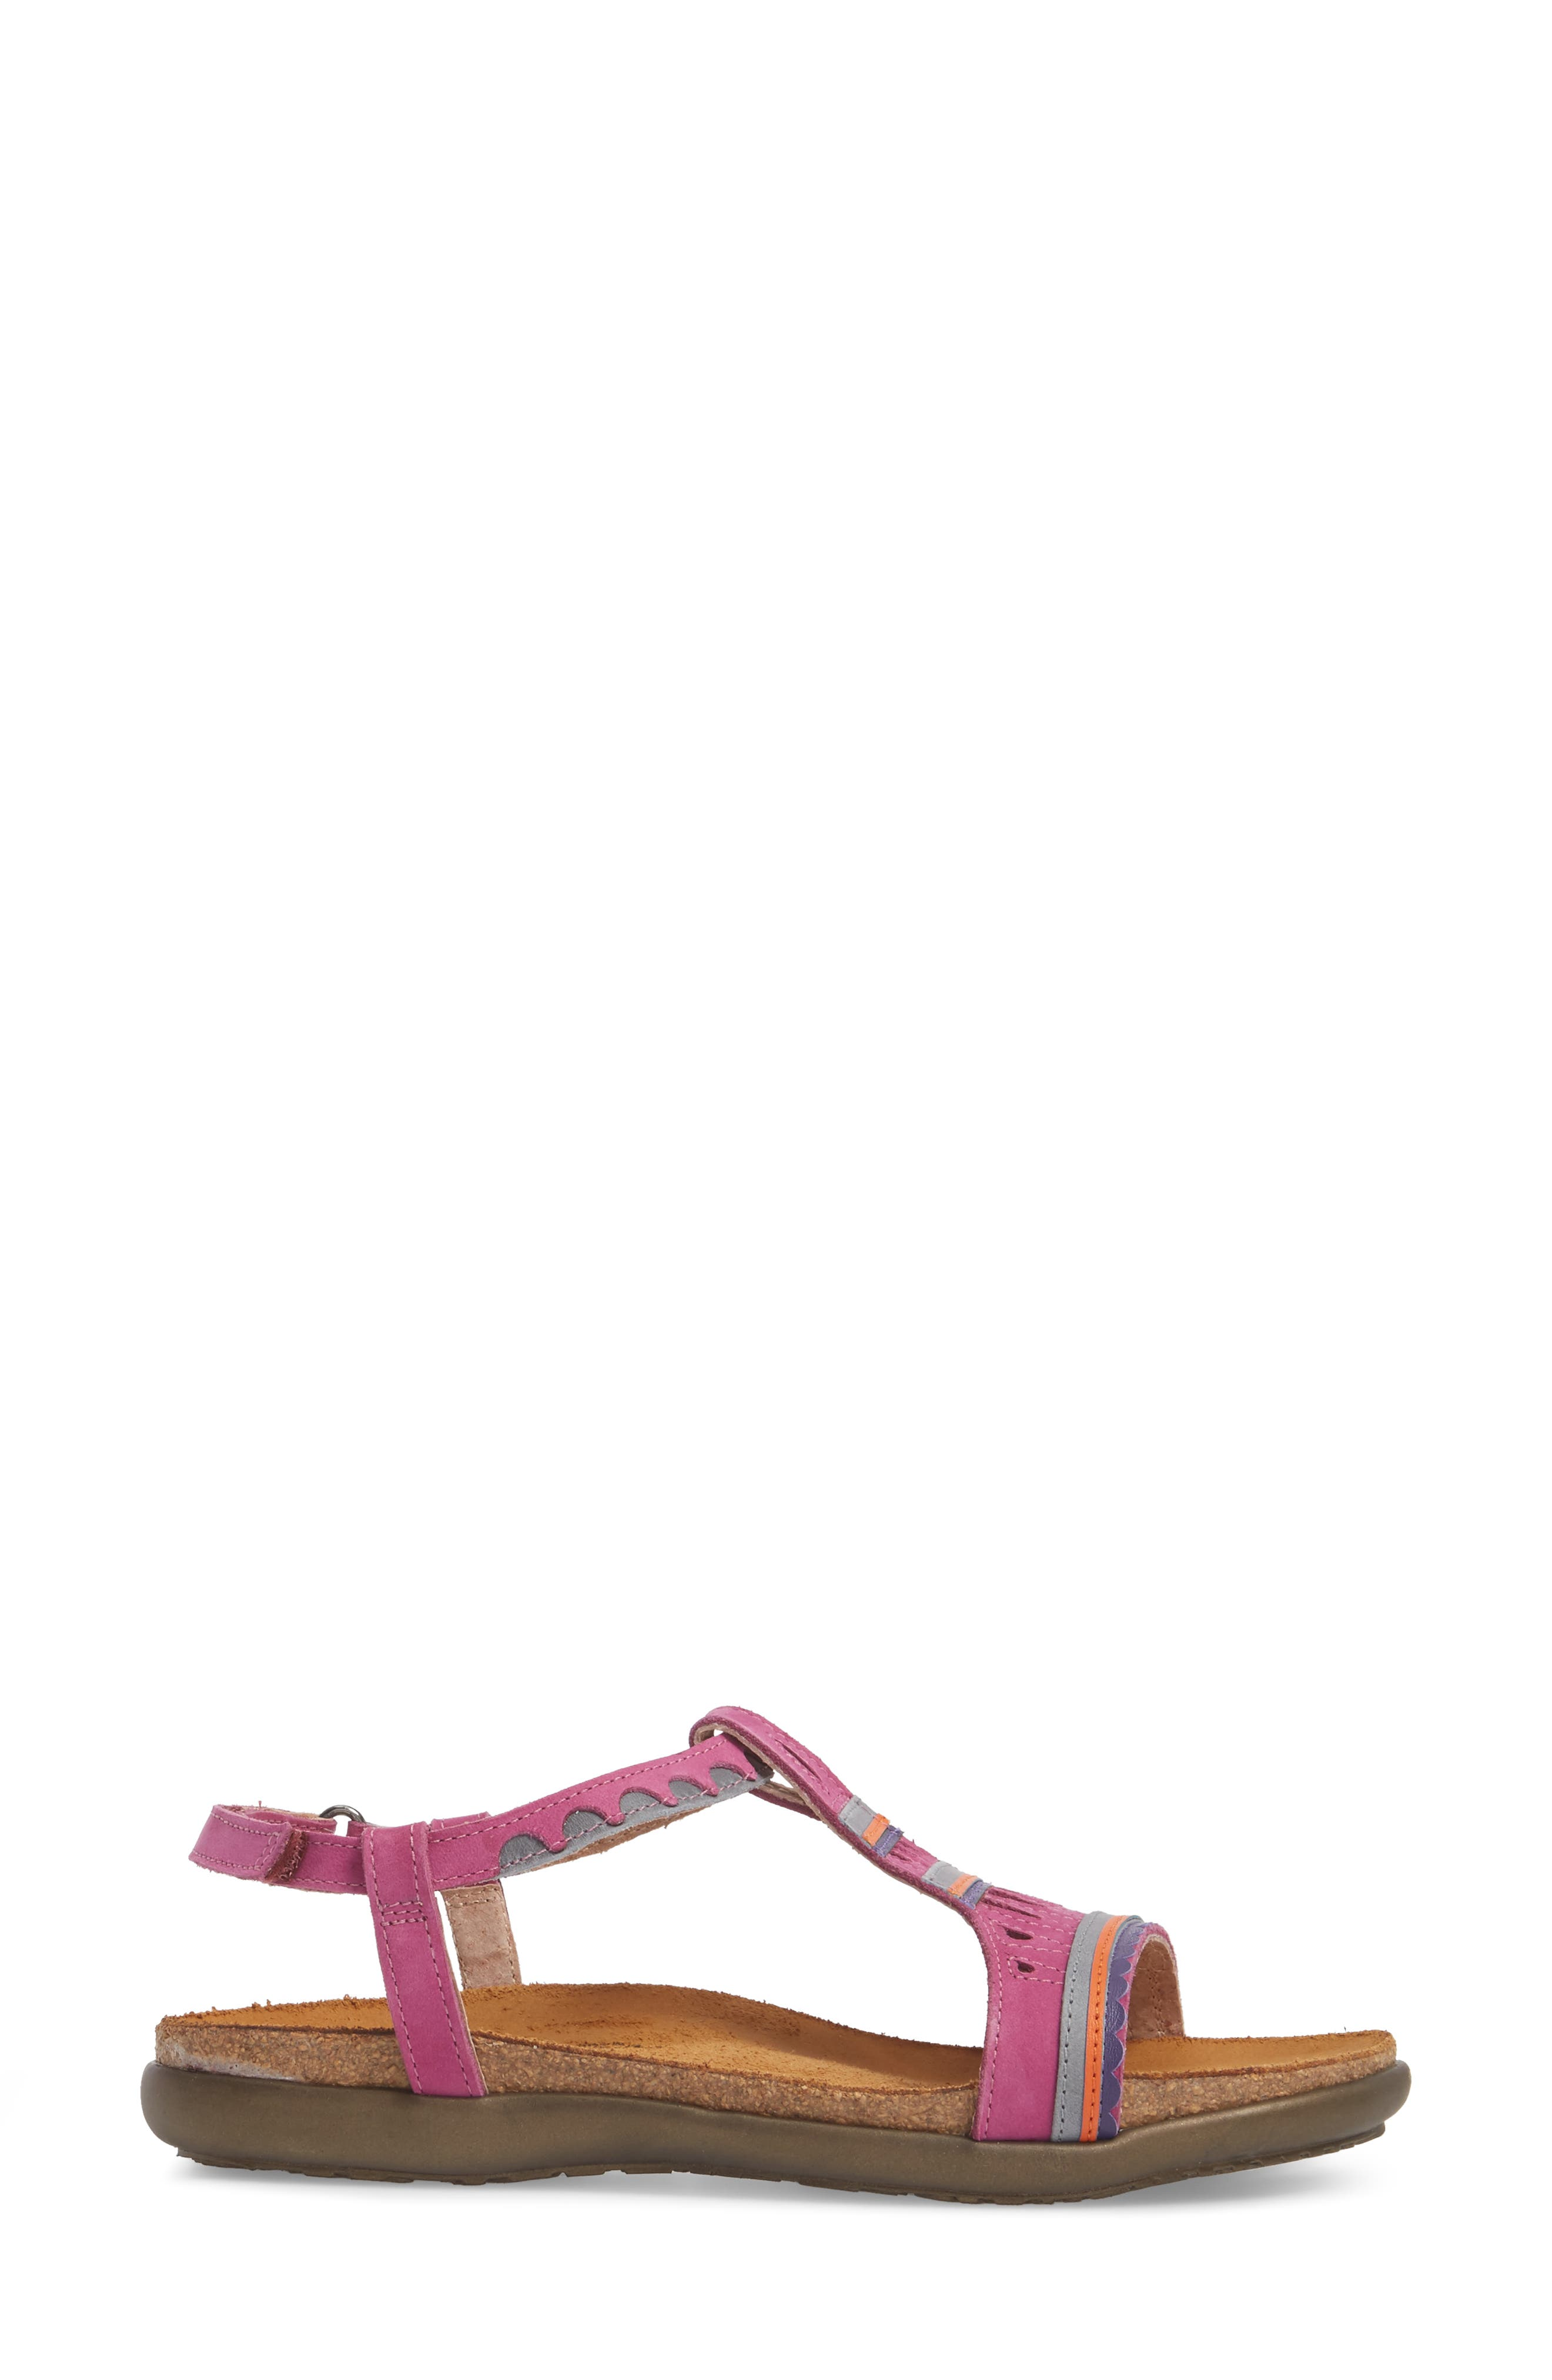 Odelia Perforated T-Strap Sandal,                             Alternate thumbnail 3, color,                             Pink Plum Nubuck